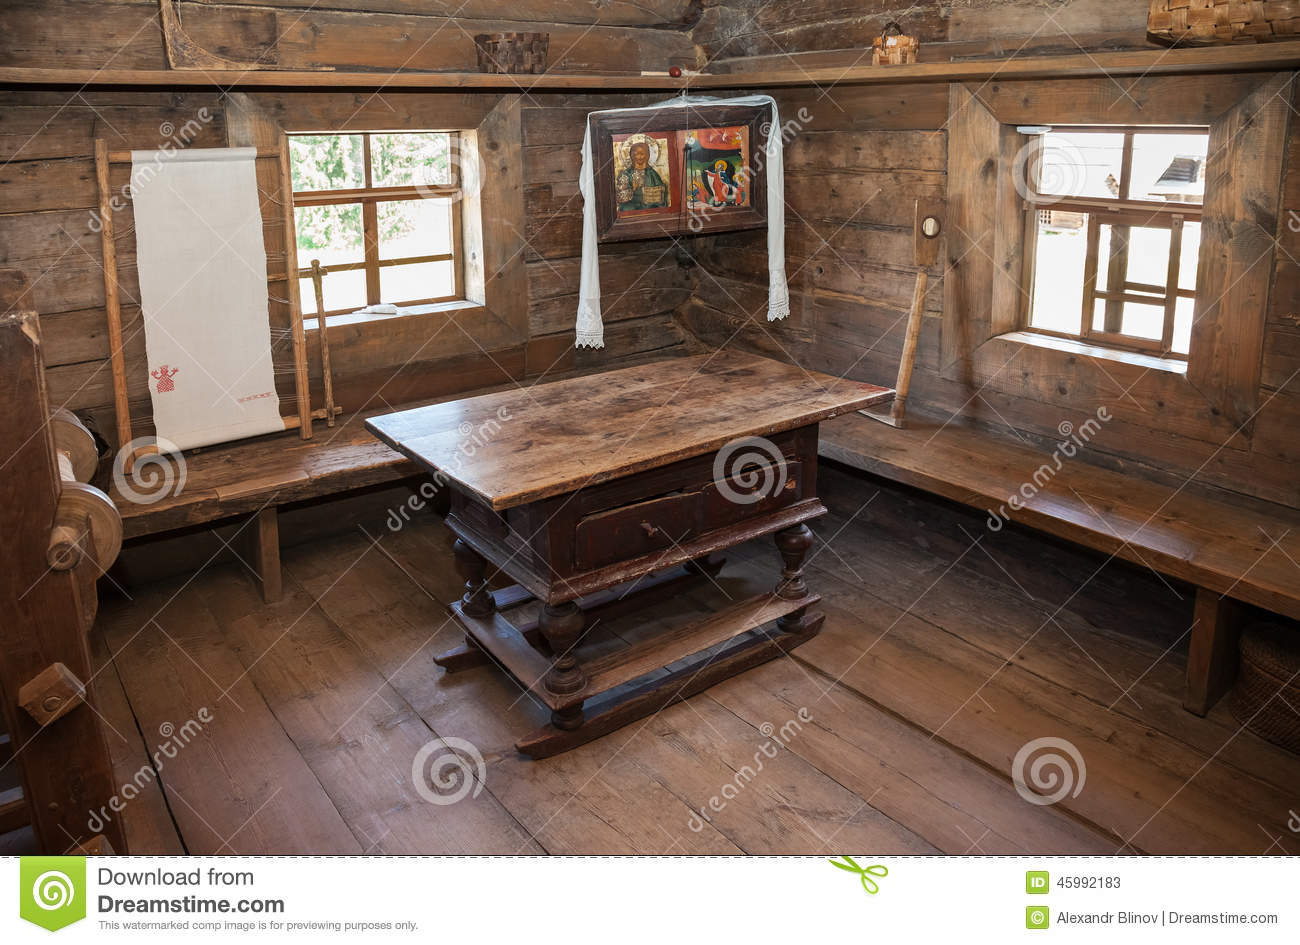 Int rieur de vieille maison en bois rurale photo stock - Interieur maison bois ...